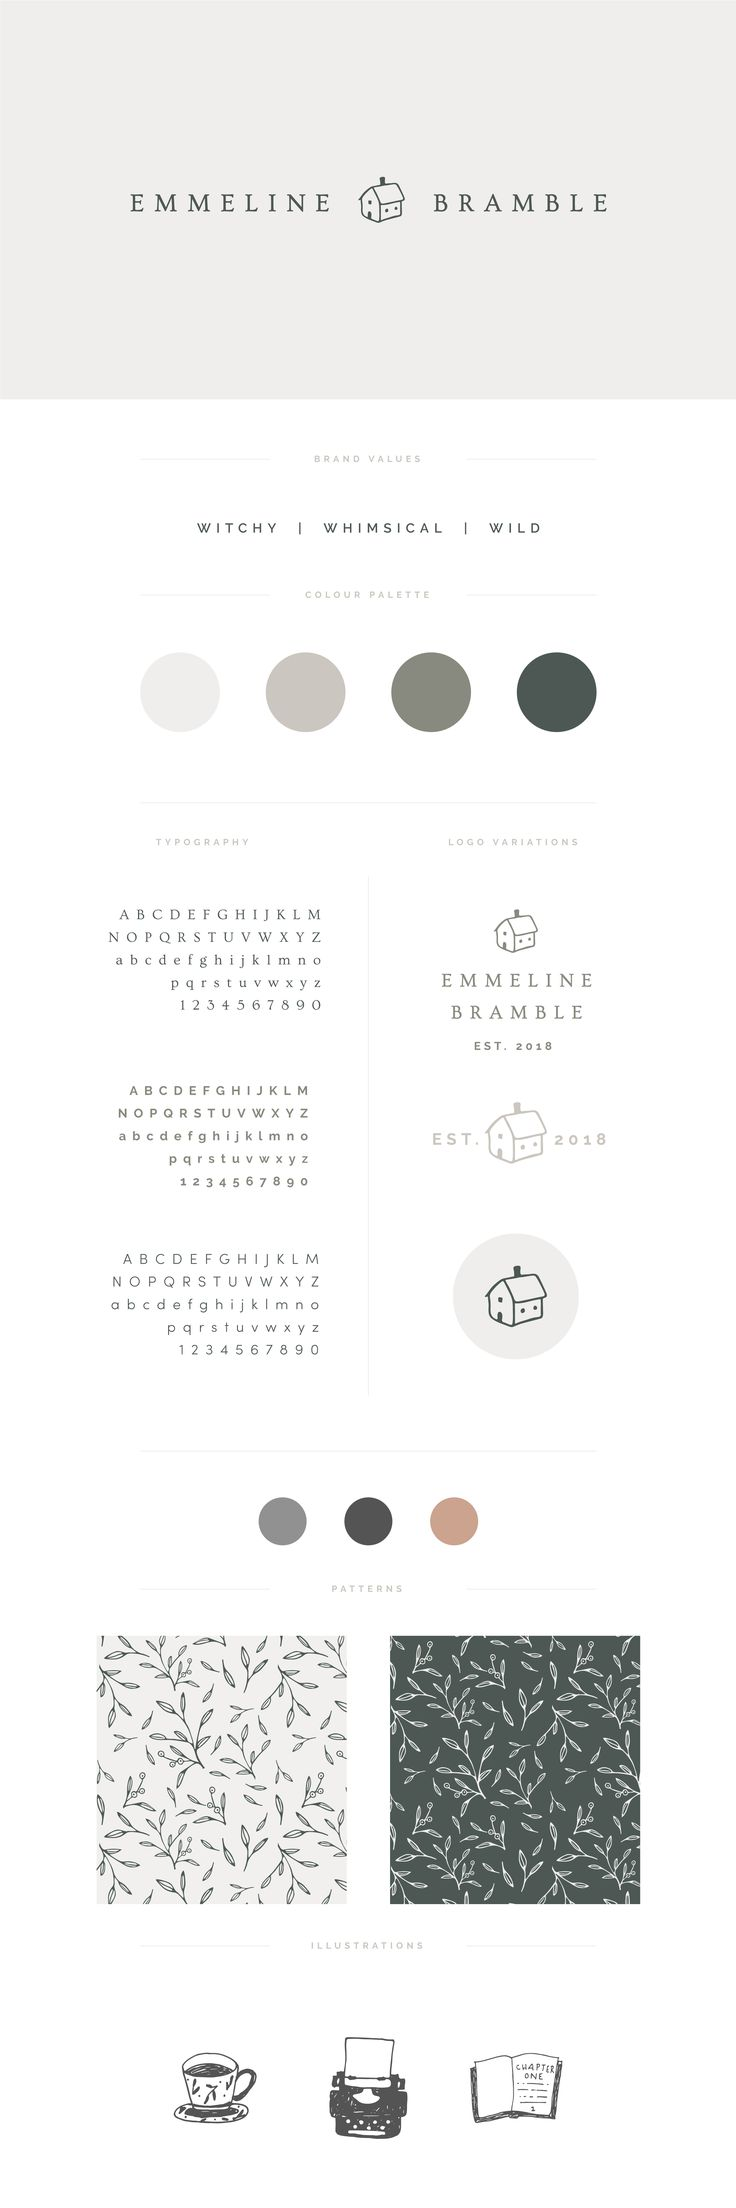 logo, branding, wildhearted, branding inspiration, brand narrative, branding tips, natural branding, ethical branding, wedding branding, wedding, stationary, botanical, small business, branding for creatives, branding for solopreneurs, branding for boss ladies, bloggers, blog branding, blog logo, witchy, whimsical, eco, natural, neutral, minimal, elegant, ethical lifestyle, sustainable, green, serif, hand-drawn, illustrative, cohesive, brand board, business card, illustrator, author, design